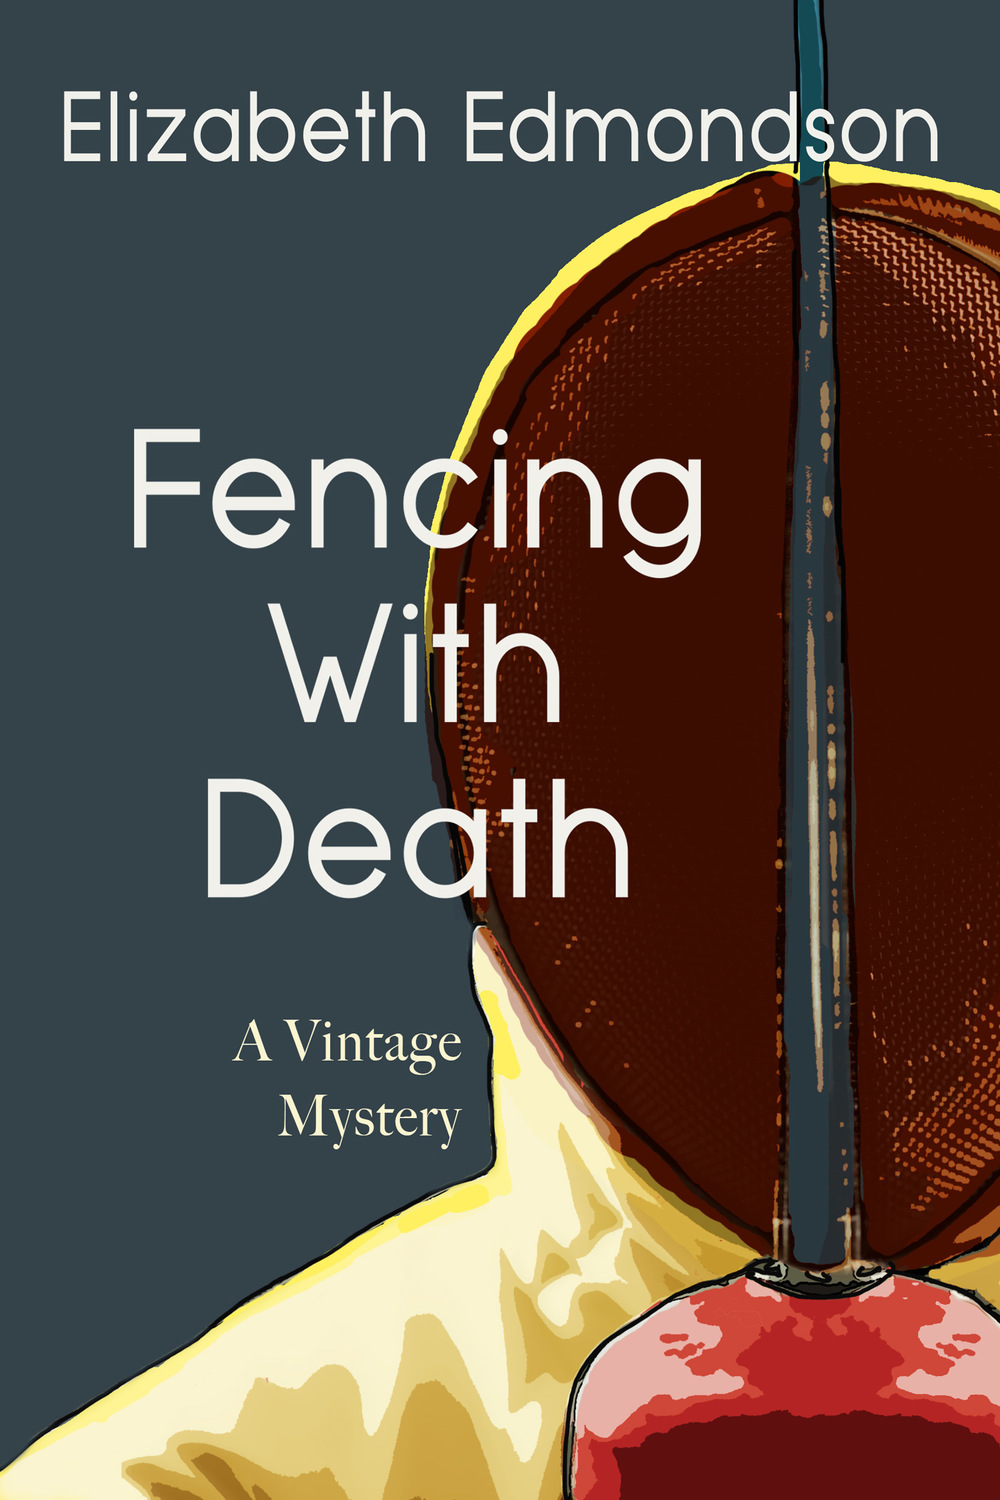 Fencing-with-Death-Cover-4.jpg